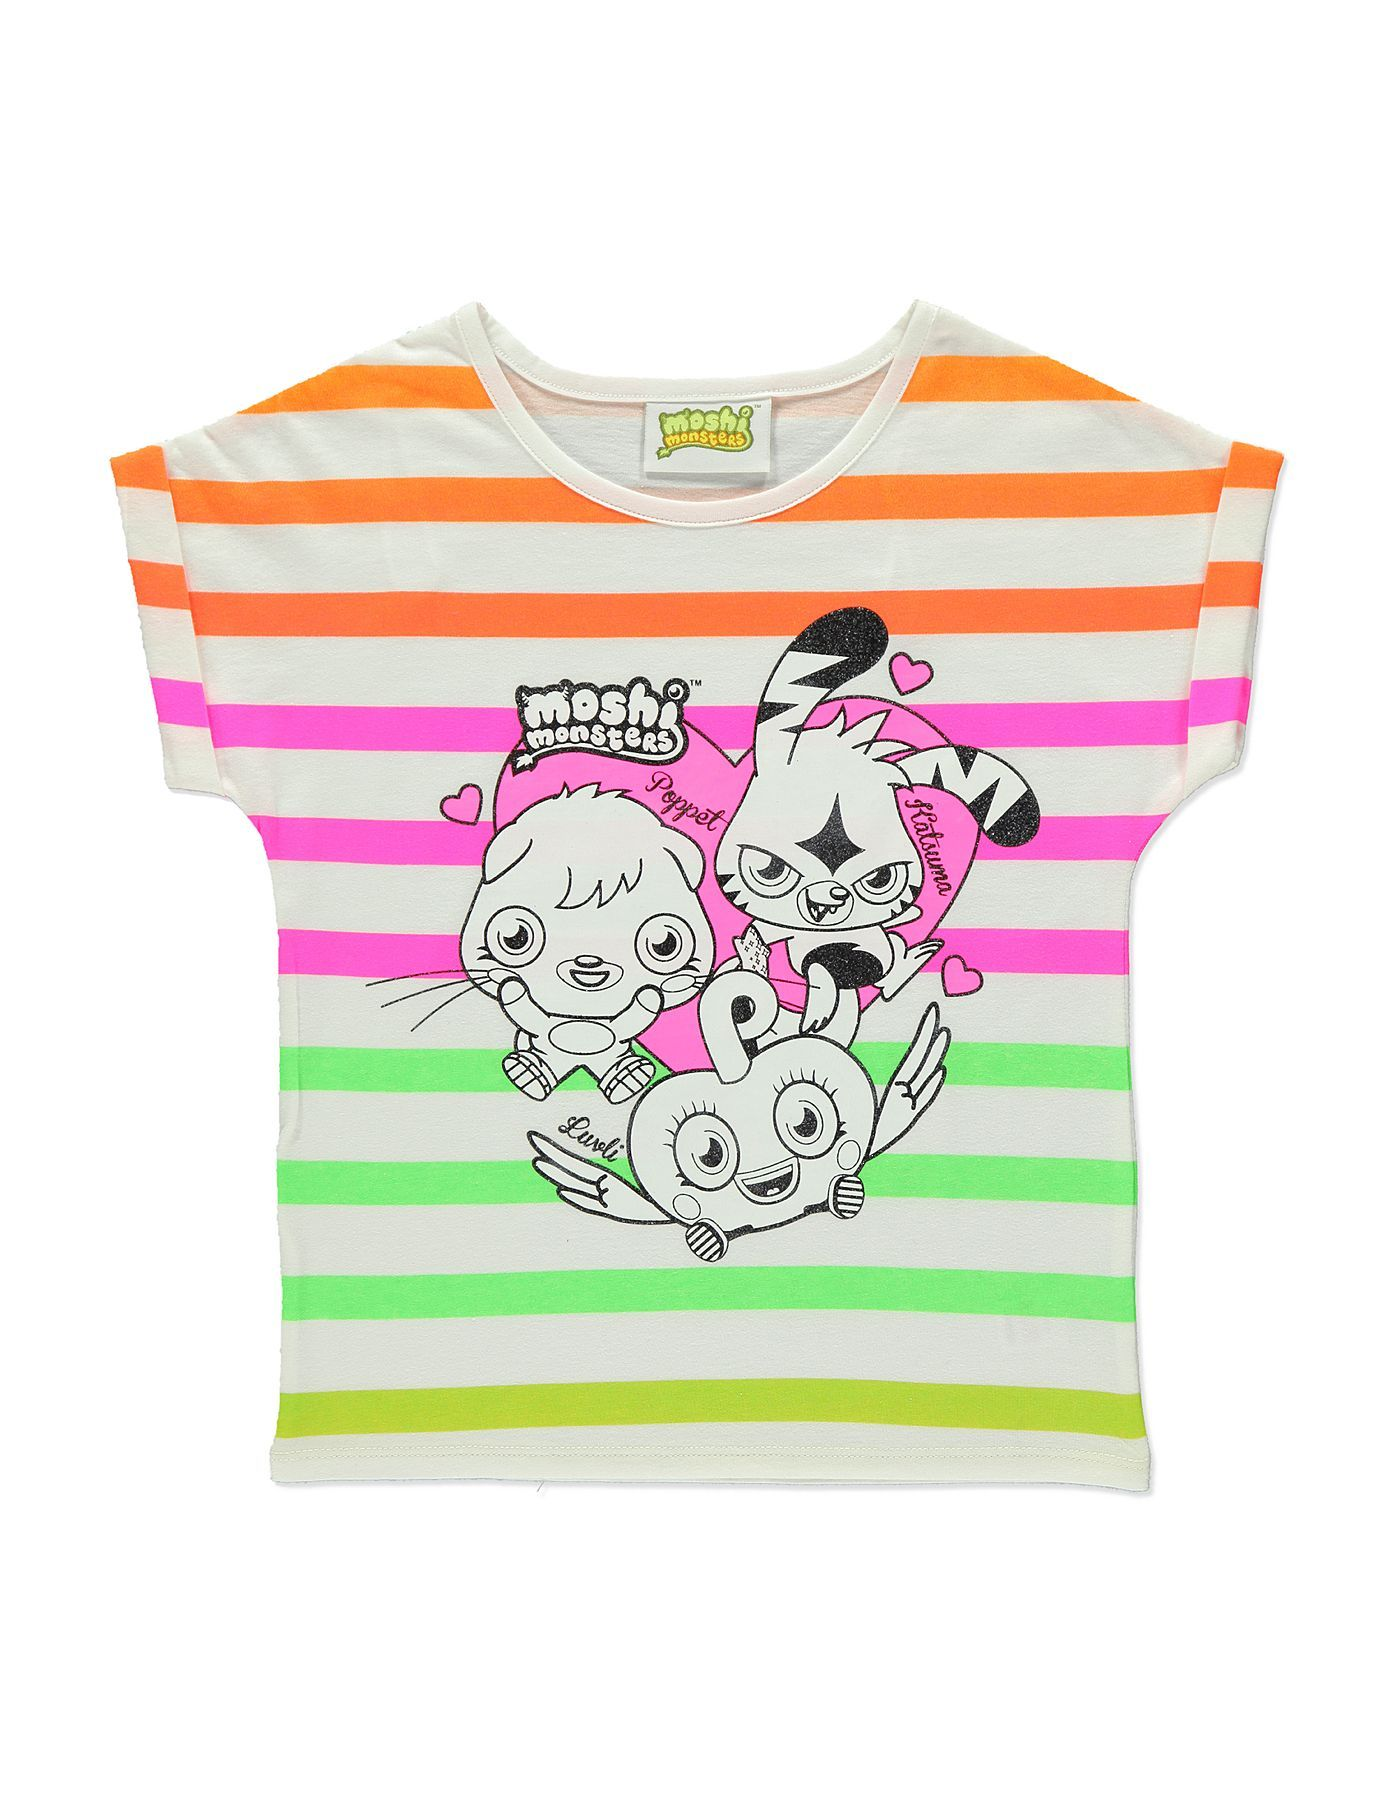 Fluorescent Moshi Monsters T-Shirt | Girls | George at ASDA